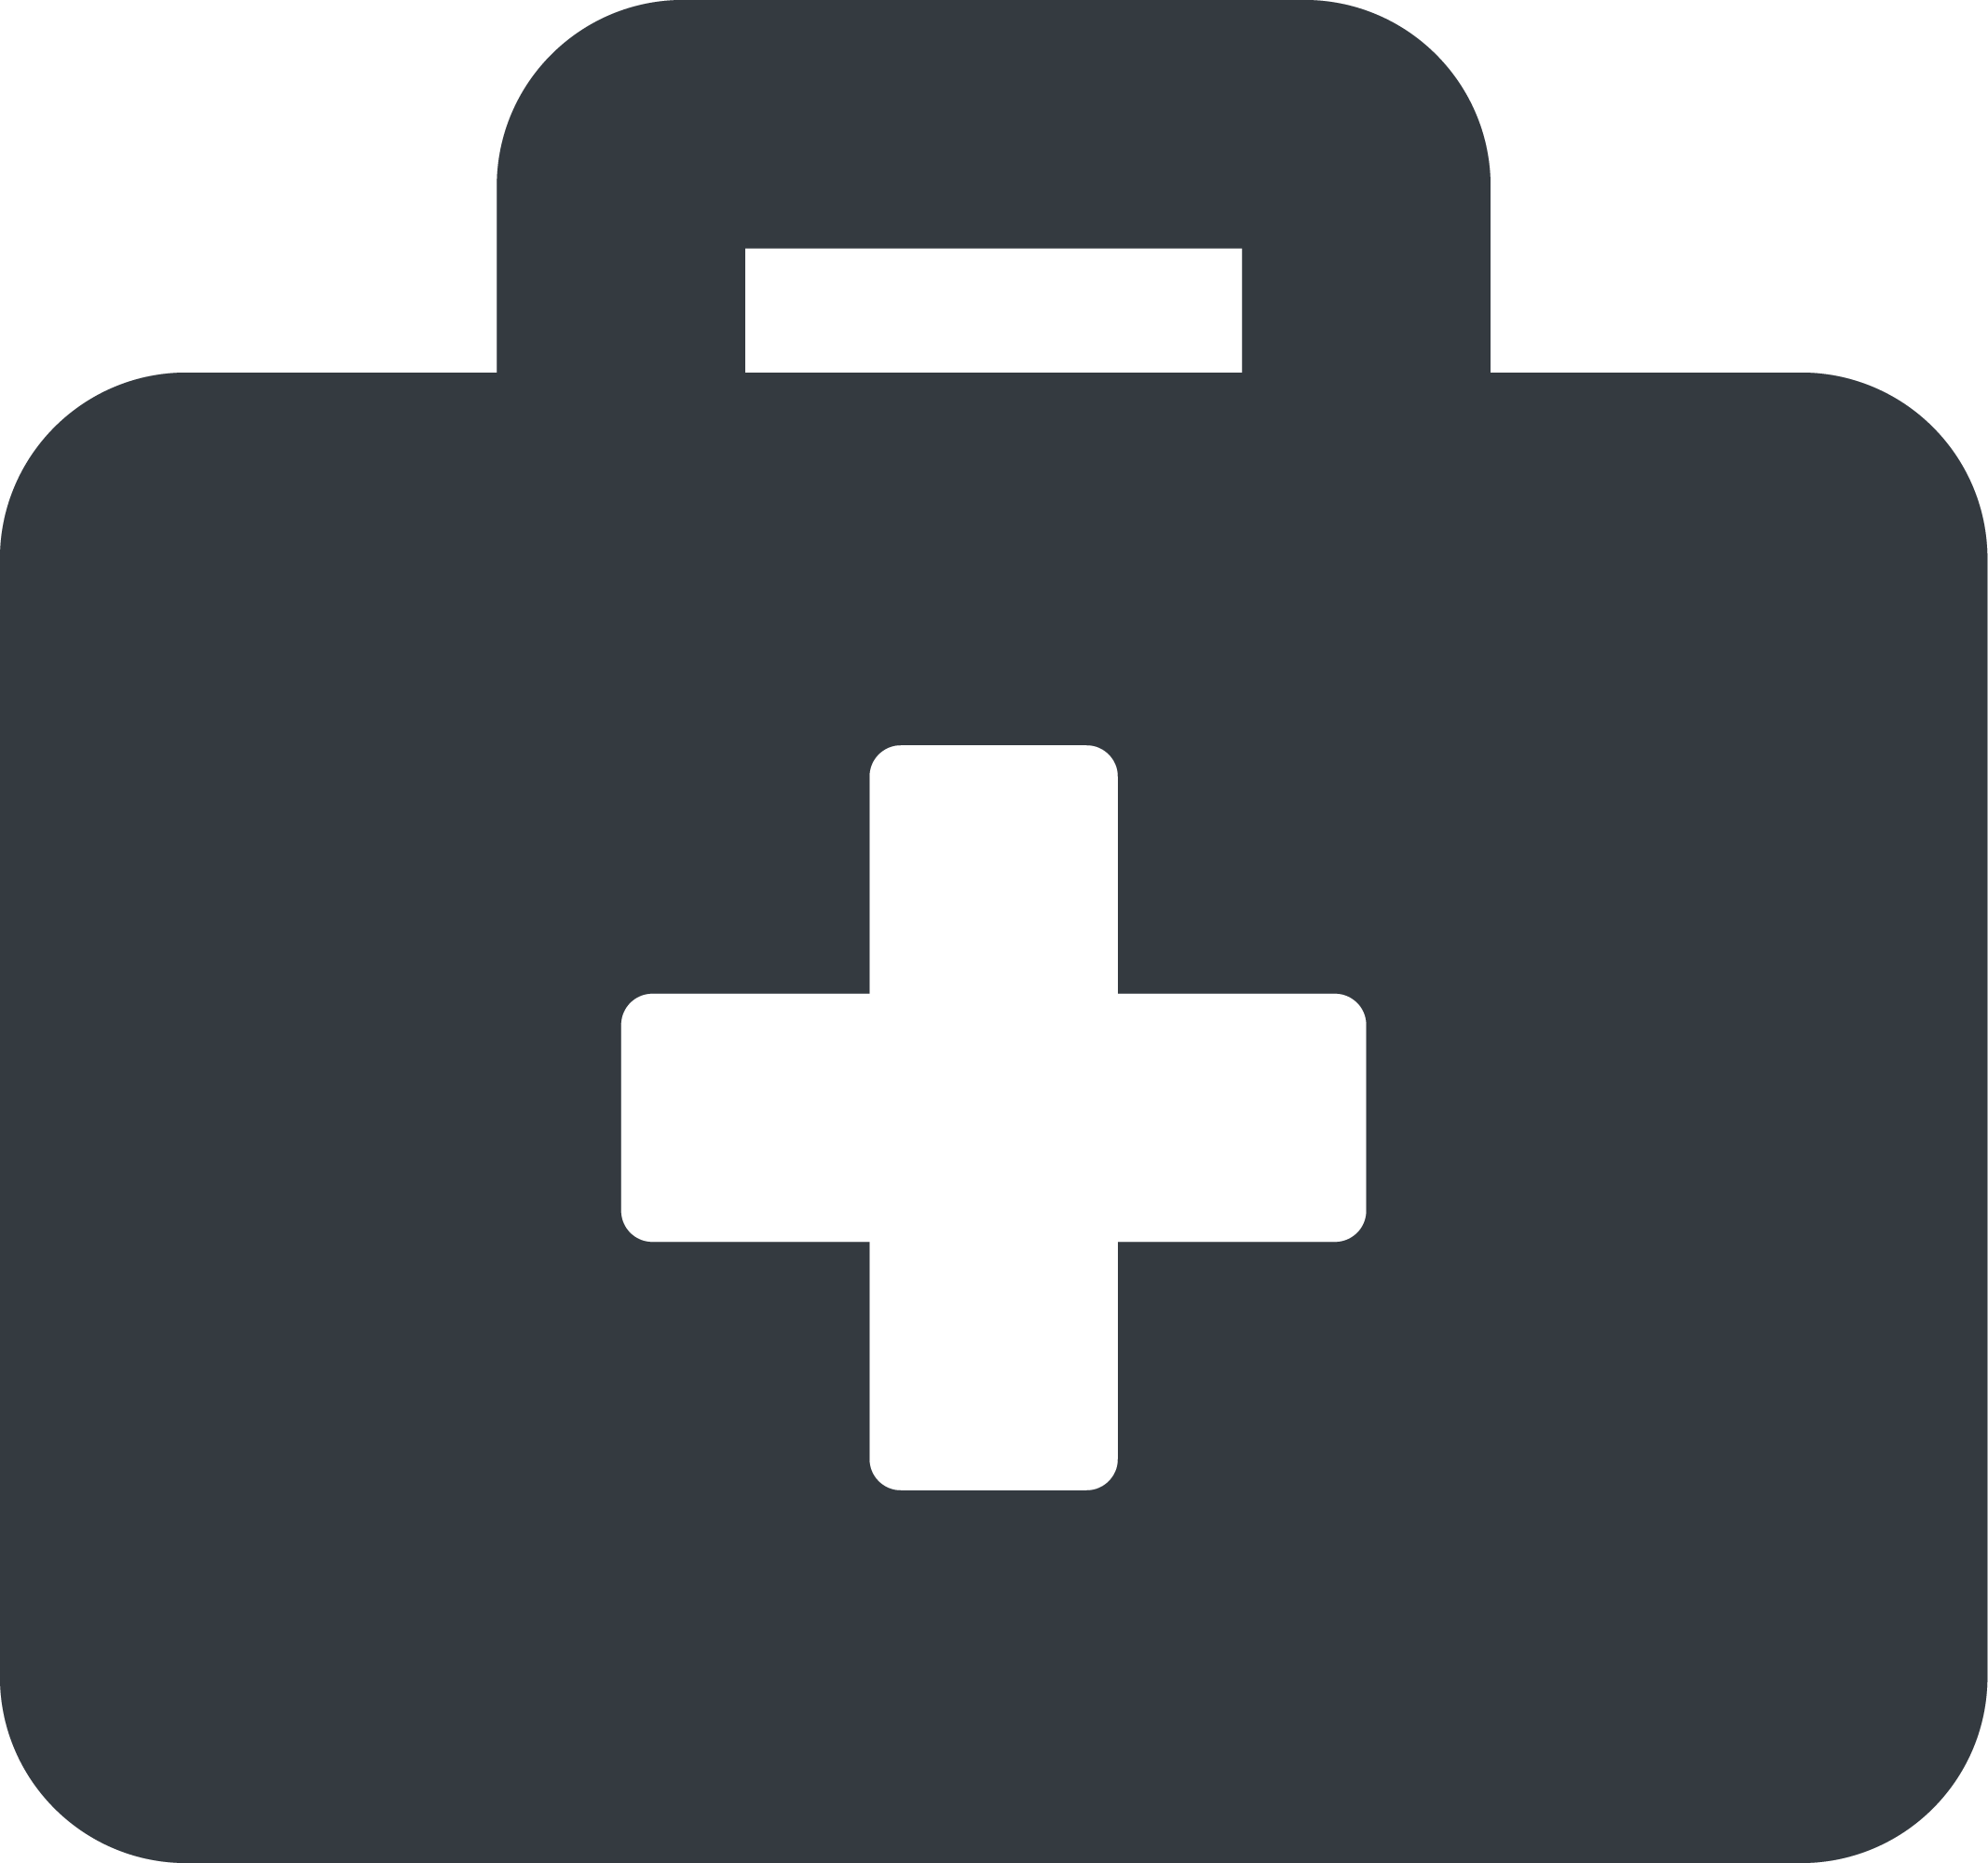 briefcase-medical-solid.png